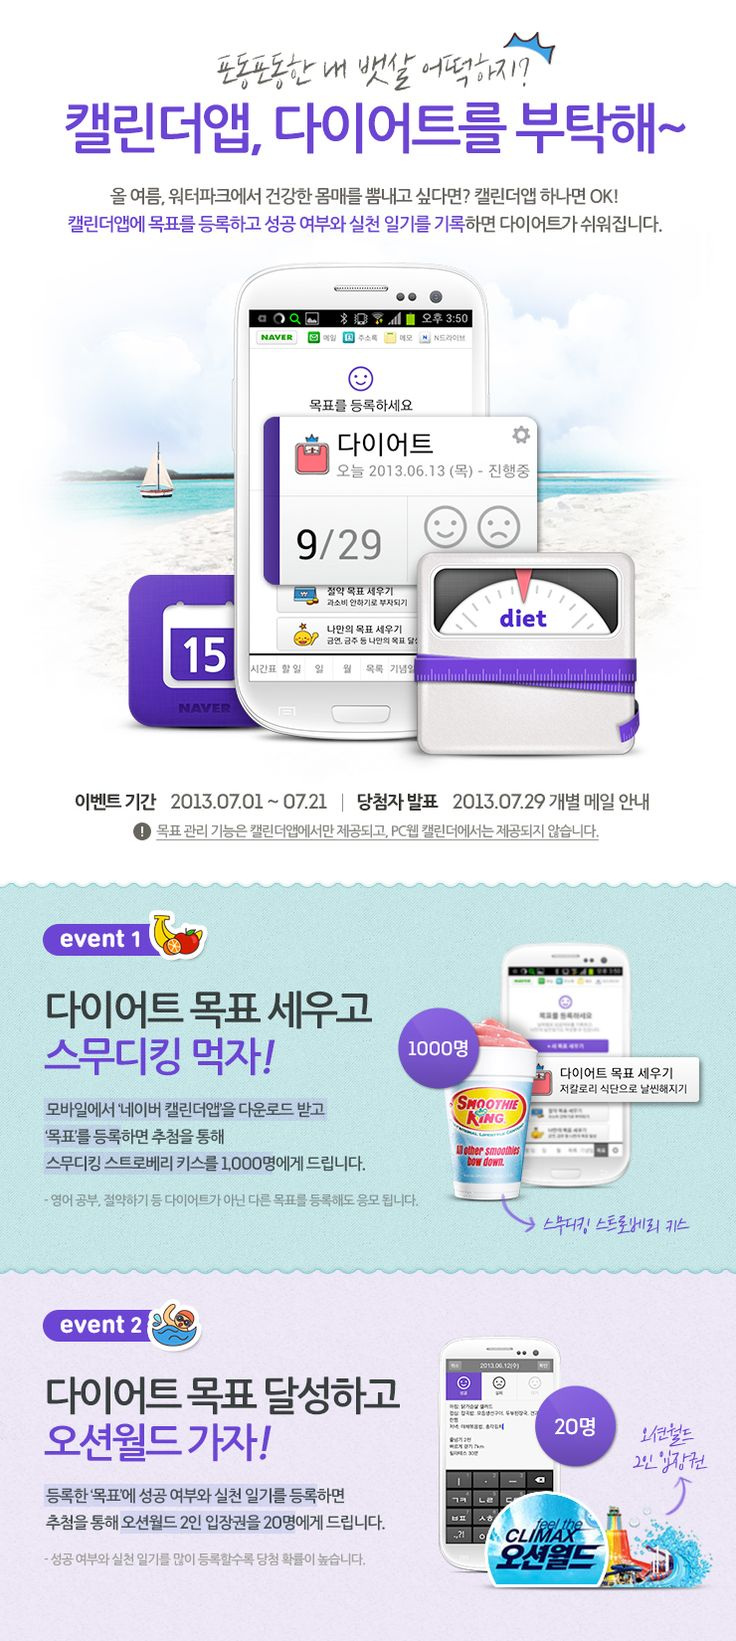 #Promotion #Event #Naver